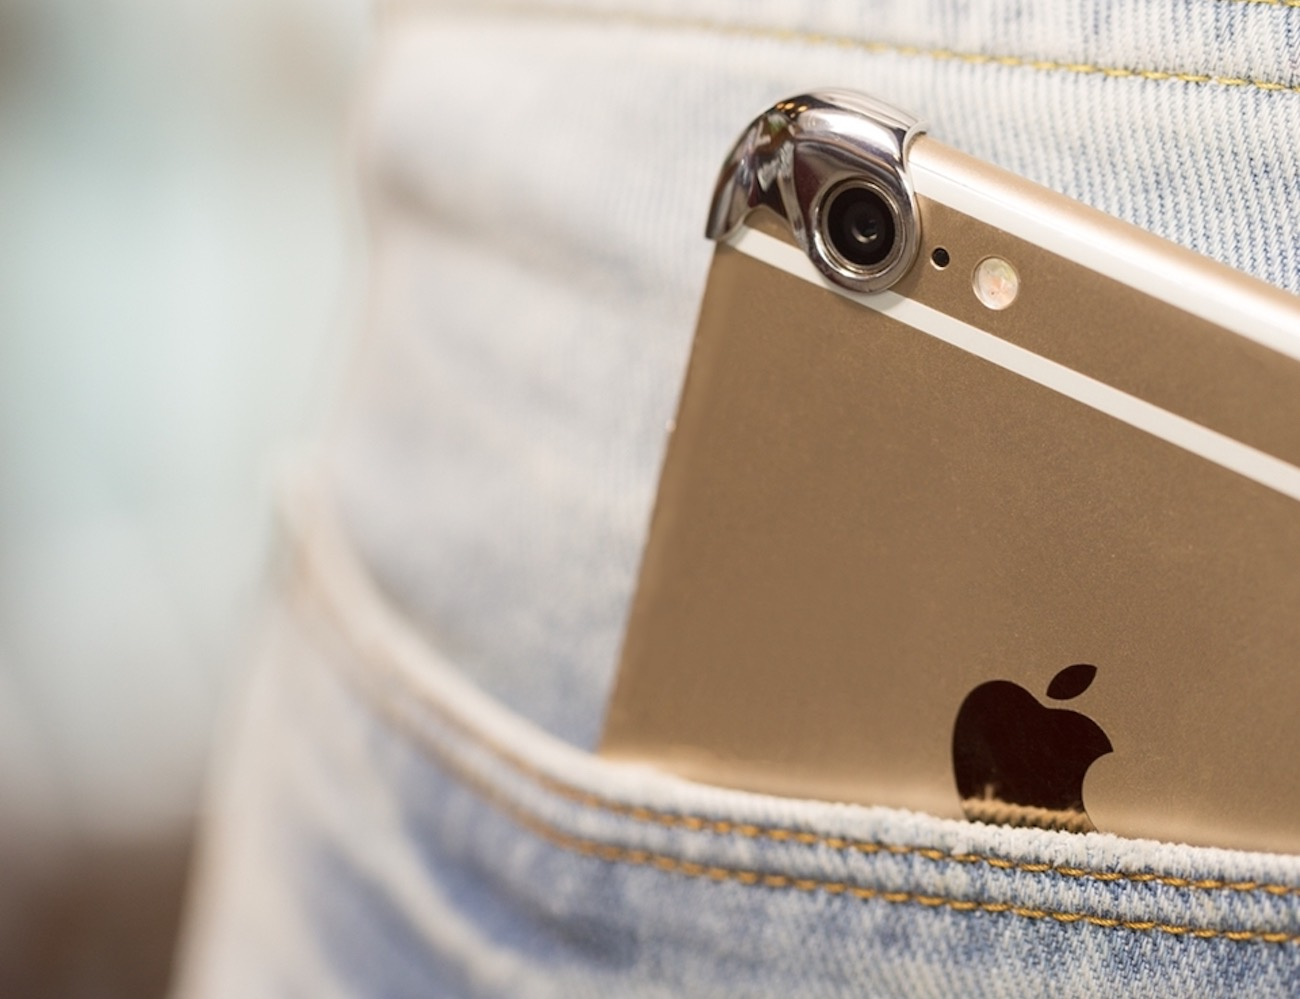 Slimmest iPhone Case Made of Silver